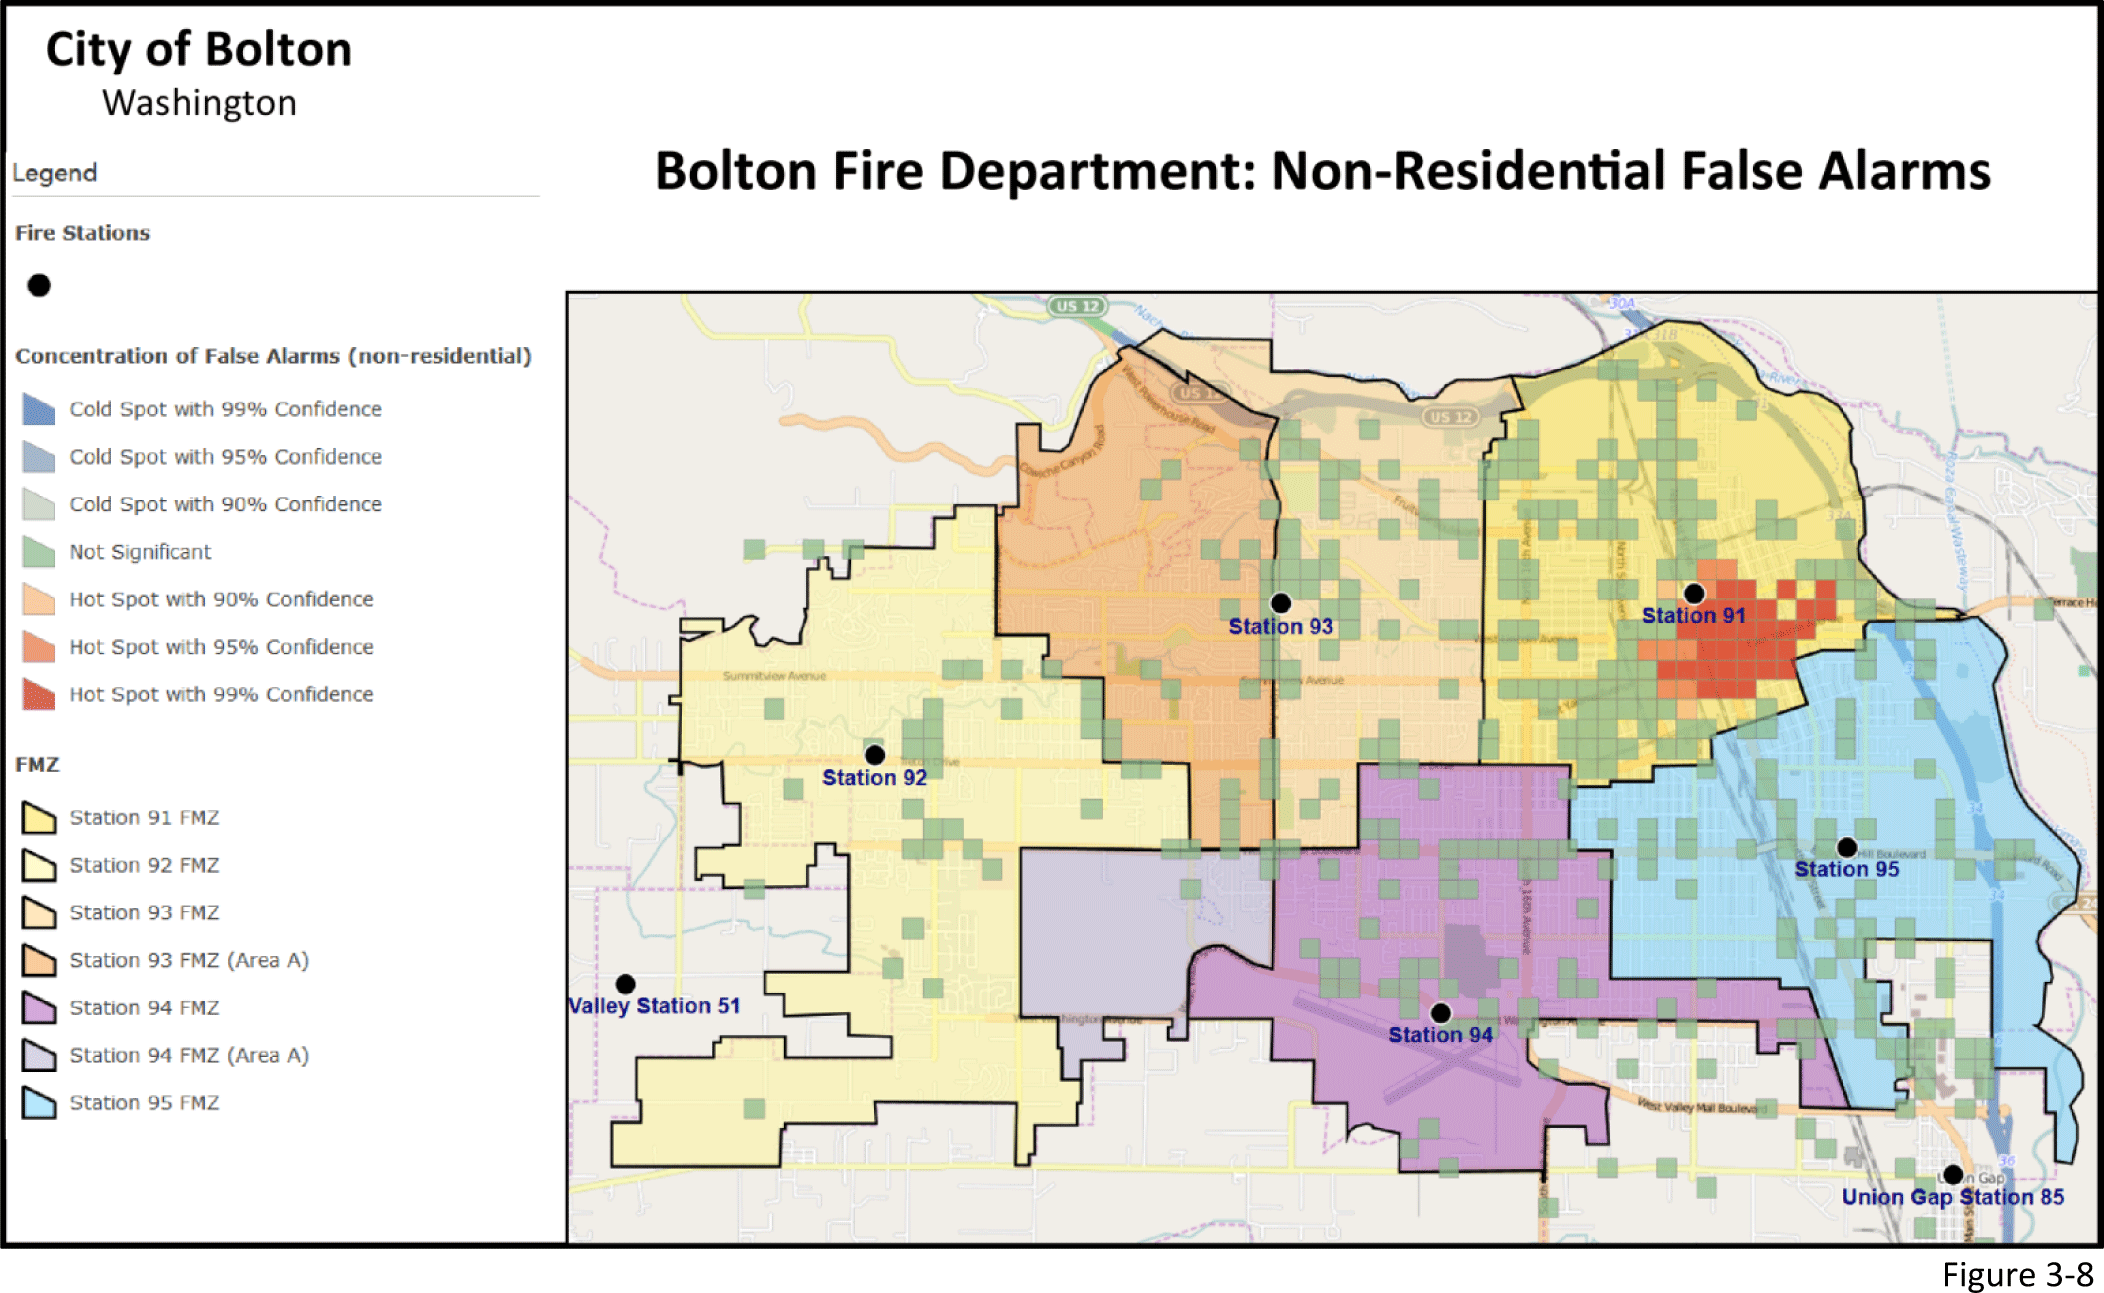 Figure 3-8: Bolton Fire Department map of Non-residential false alarms